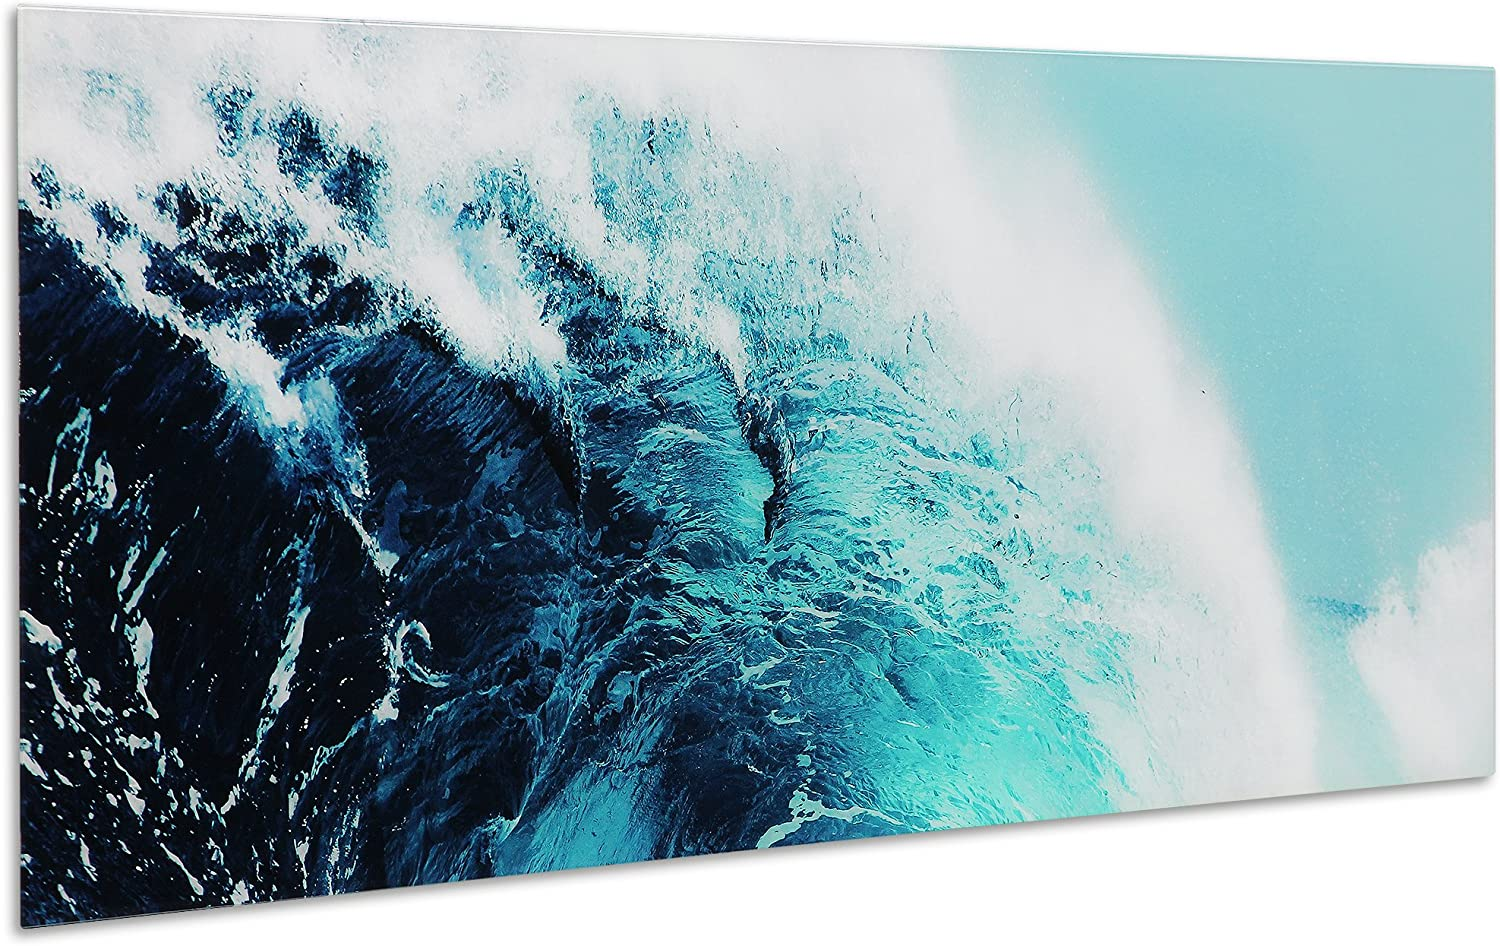 Amazon Com Empire Art Direct Blue Wave 1 Frameless Free Floating Tempered Glass Panel Graphic Teal Sea Wall Art 63 X 24 X 0 2 Ready To Hang Posters Prints